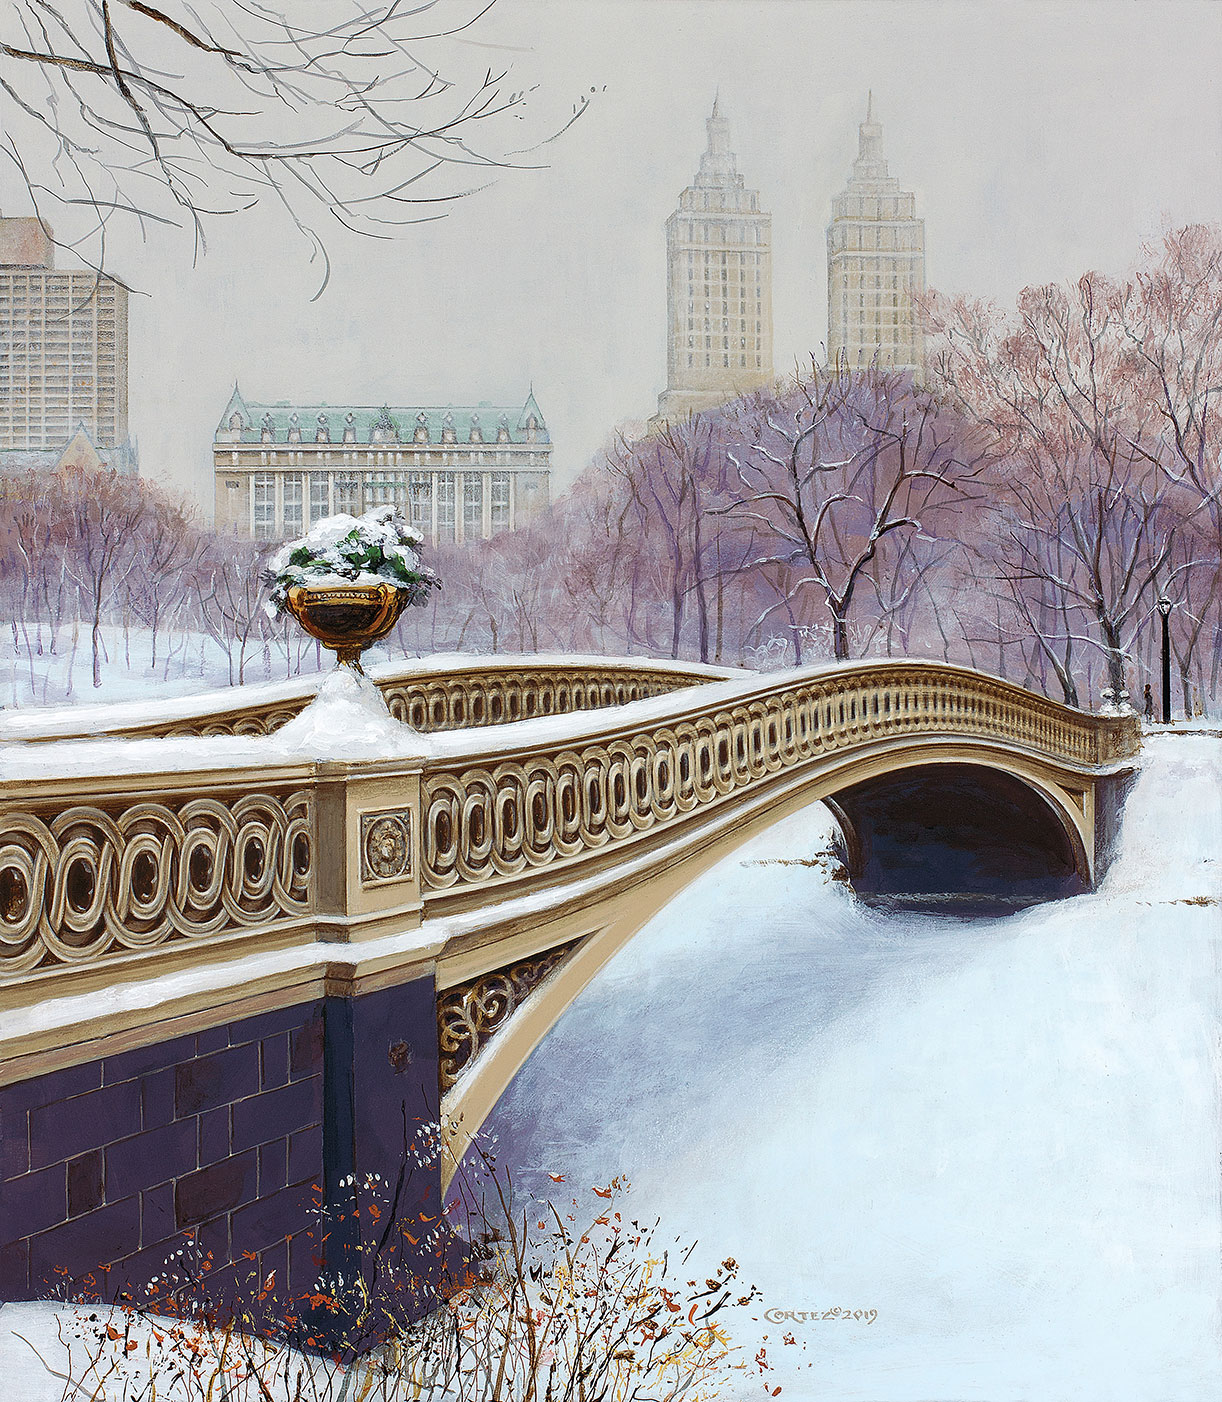 The Bow Bridge in Winter by Jenness Cortez